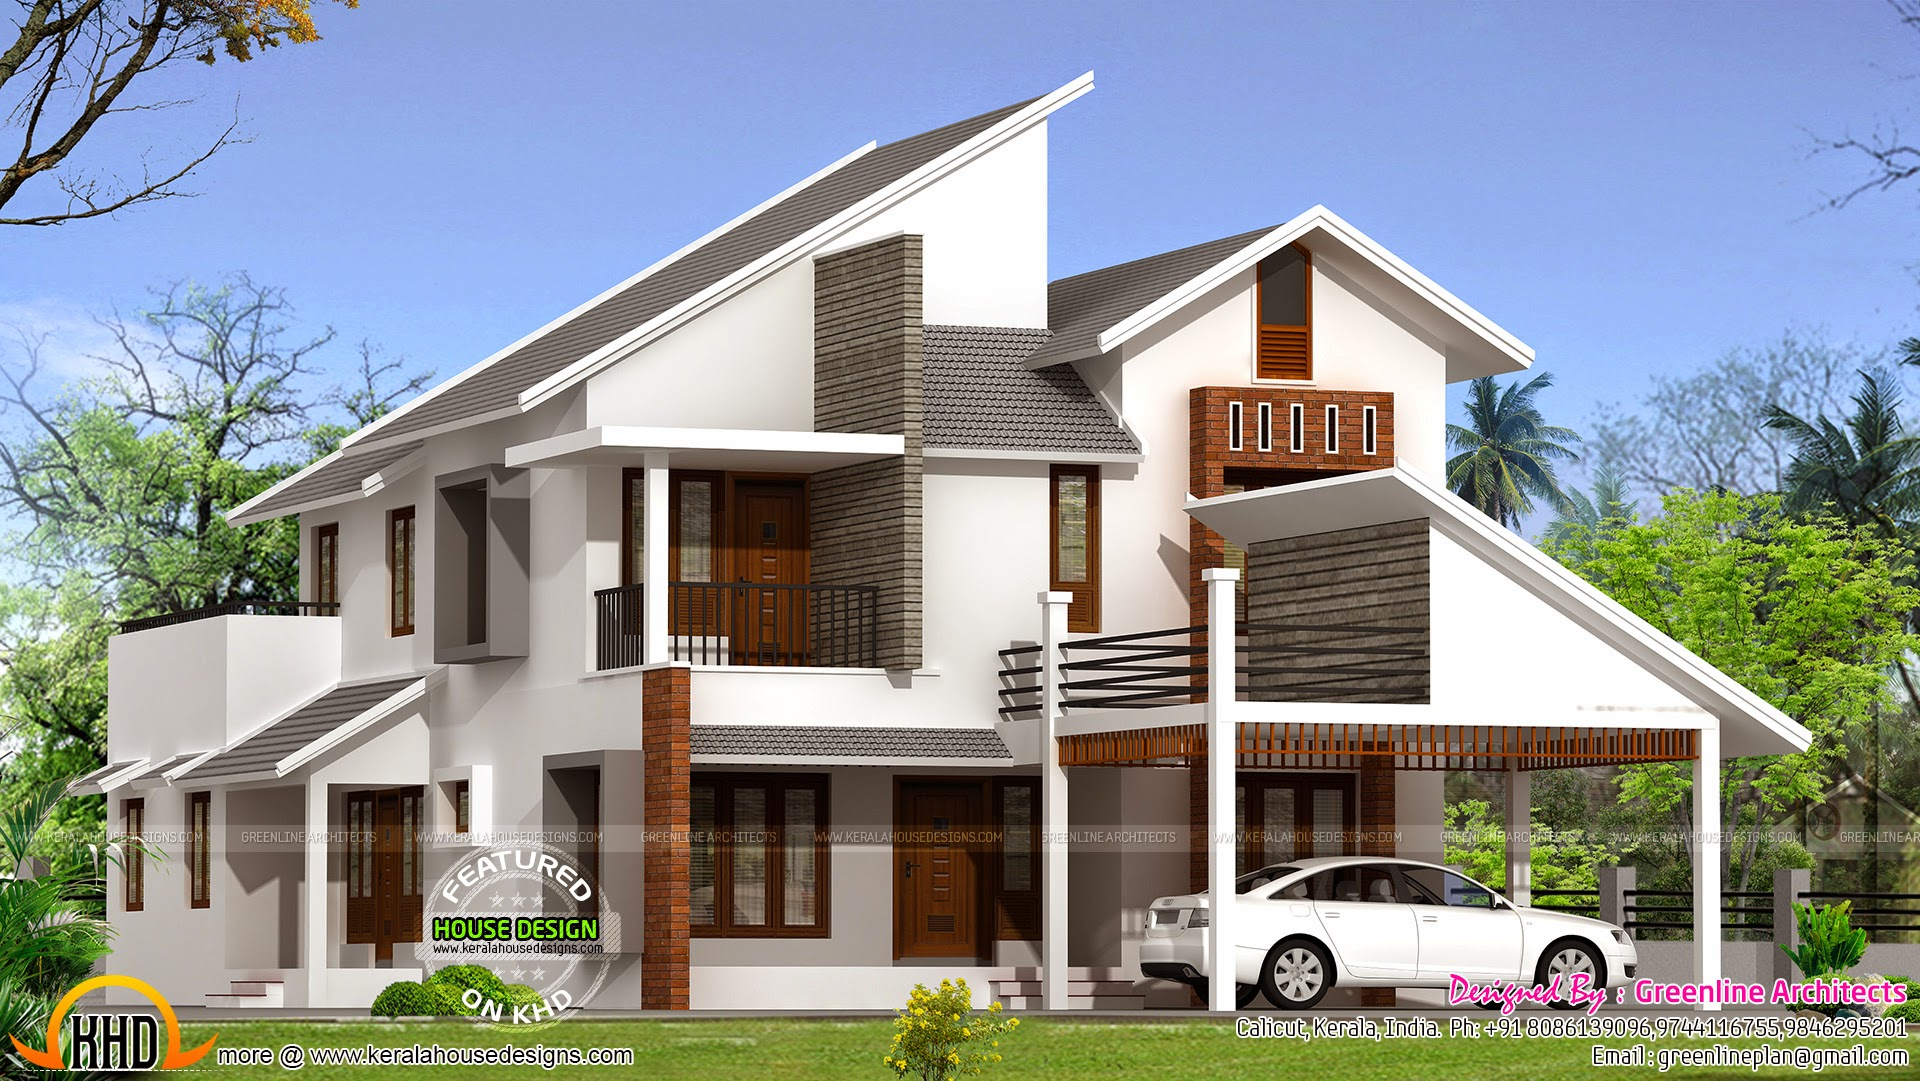 New modern house plan kerala home design and floor plans for Modern house plans and designs